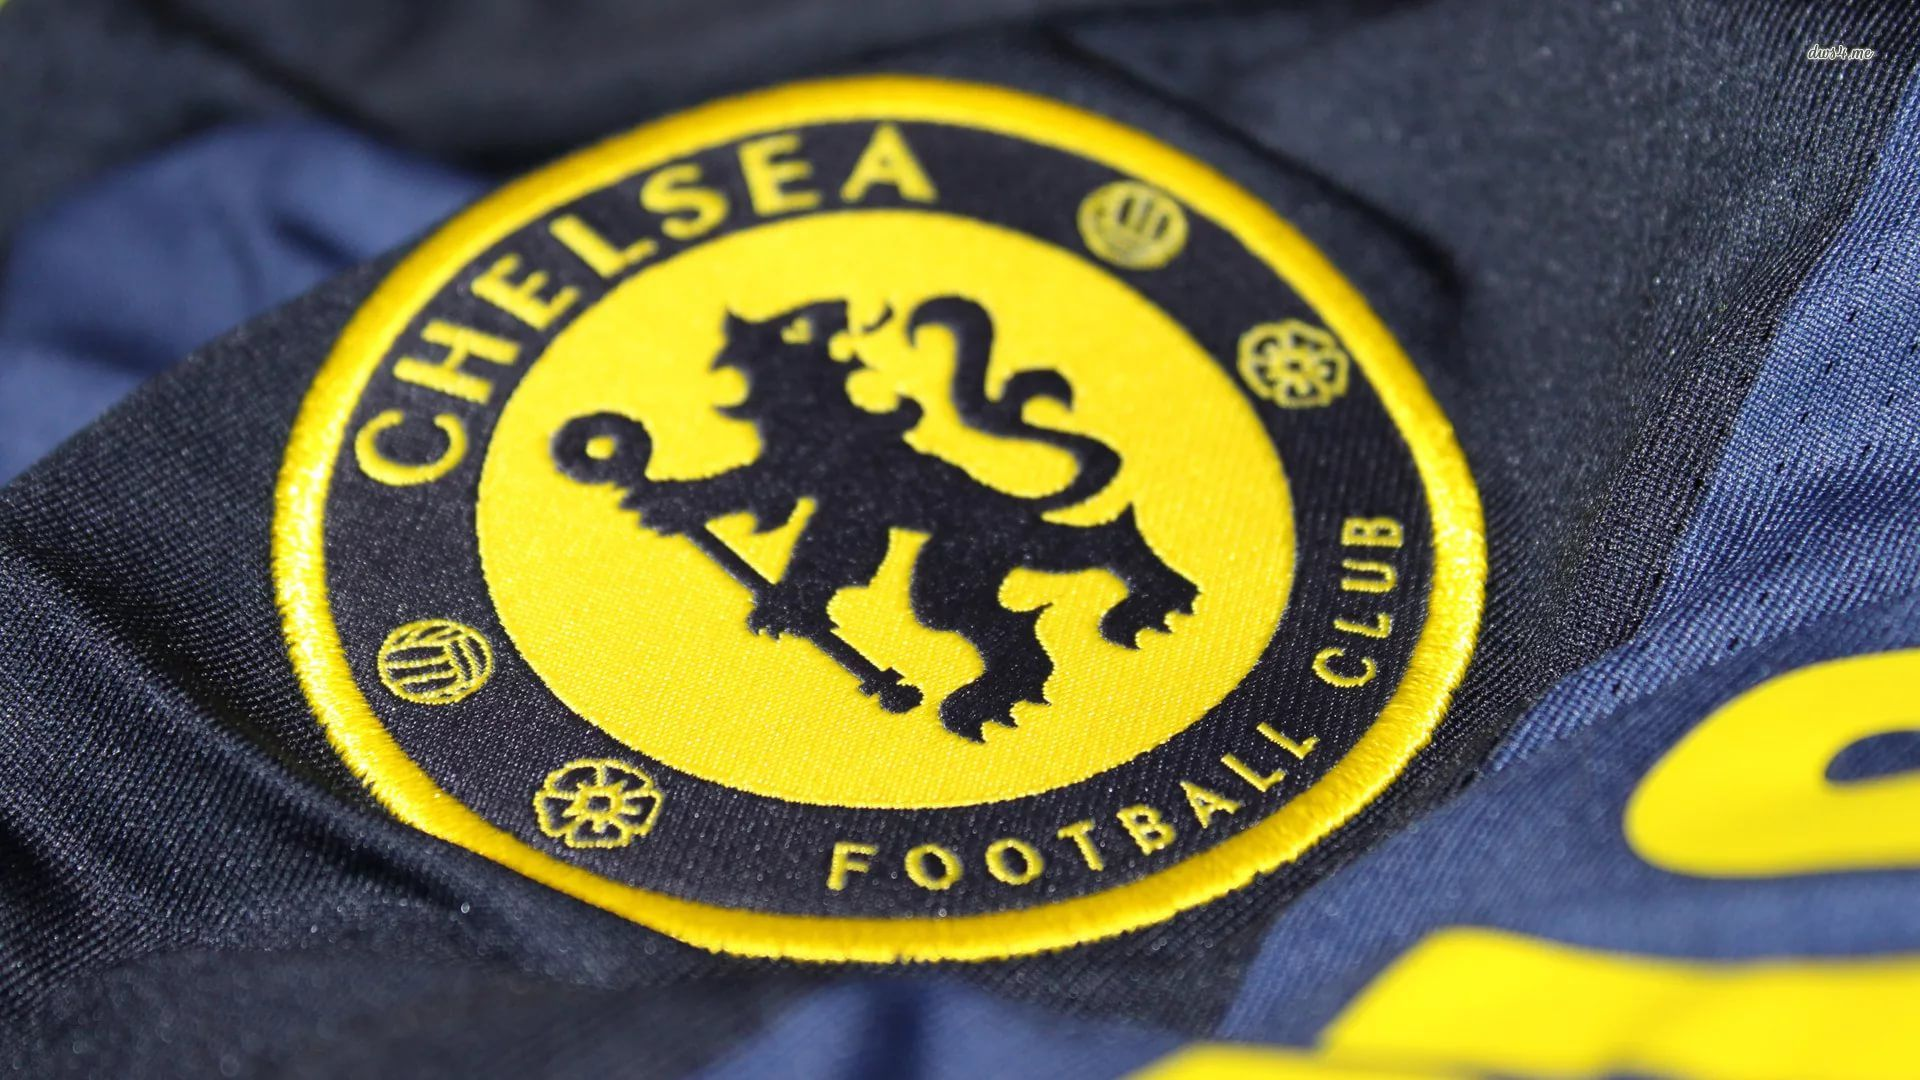 Chelsea download free wallpapers for pc in hd